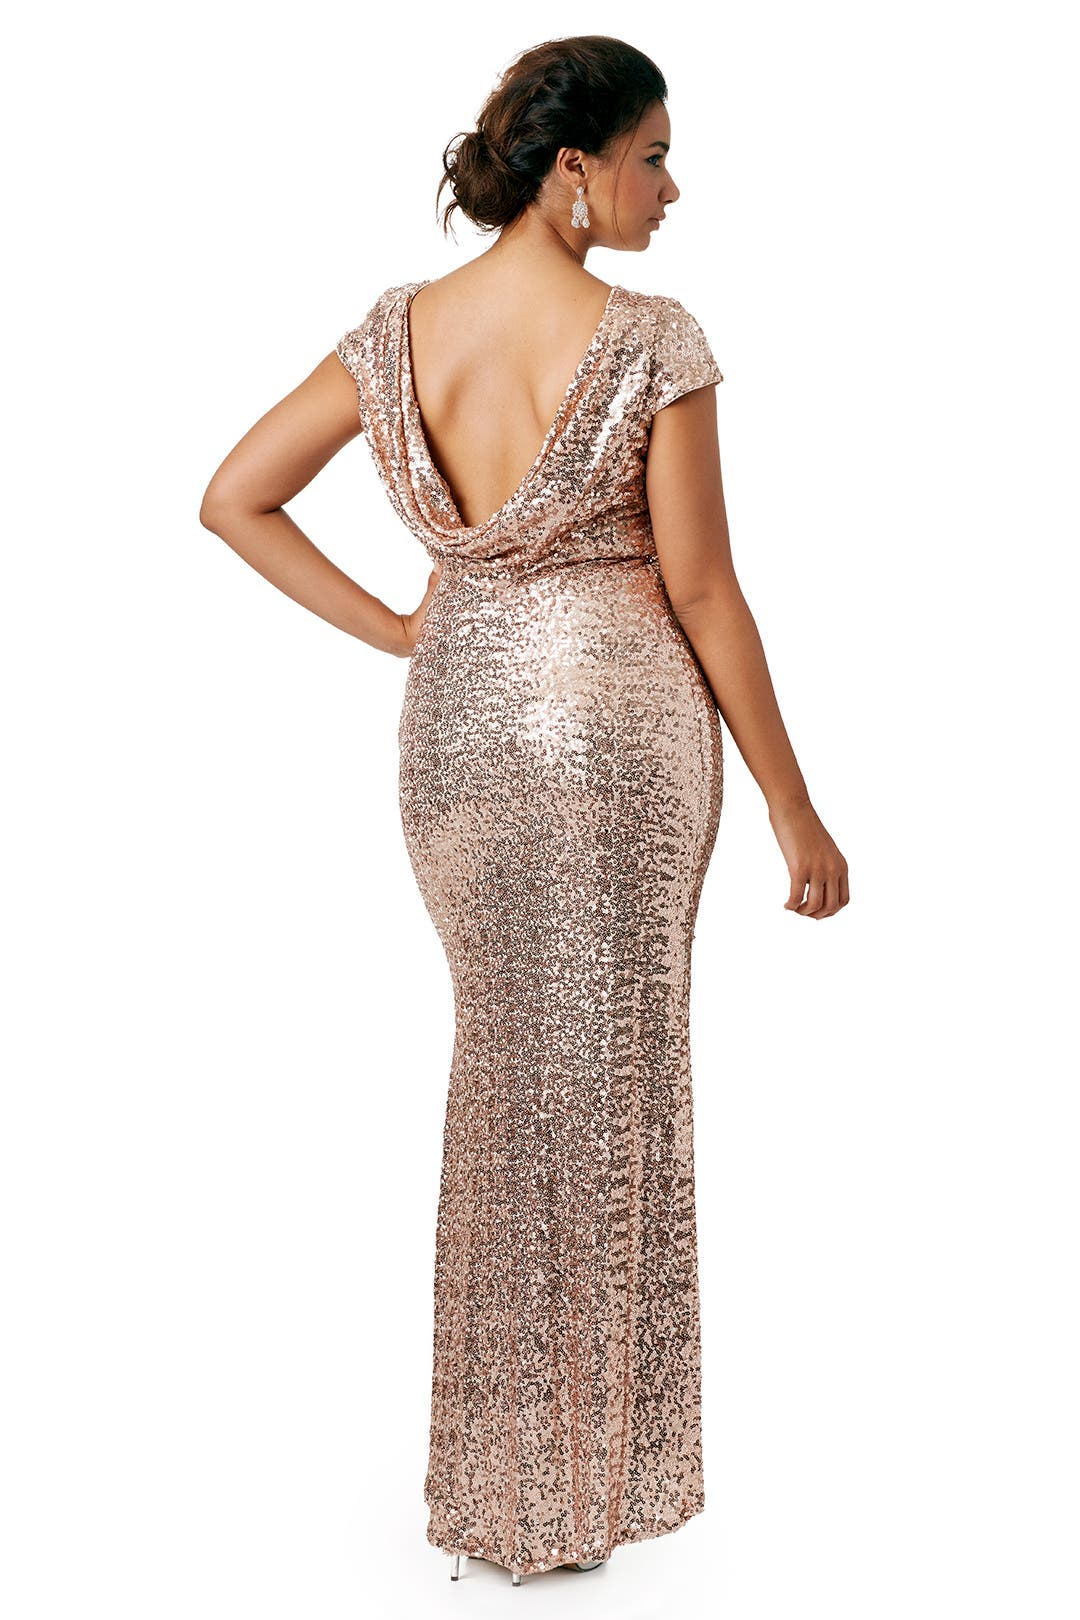 Shimmering Blush Gown by Badgley Mischka for $90 - Rent the Runway